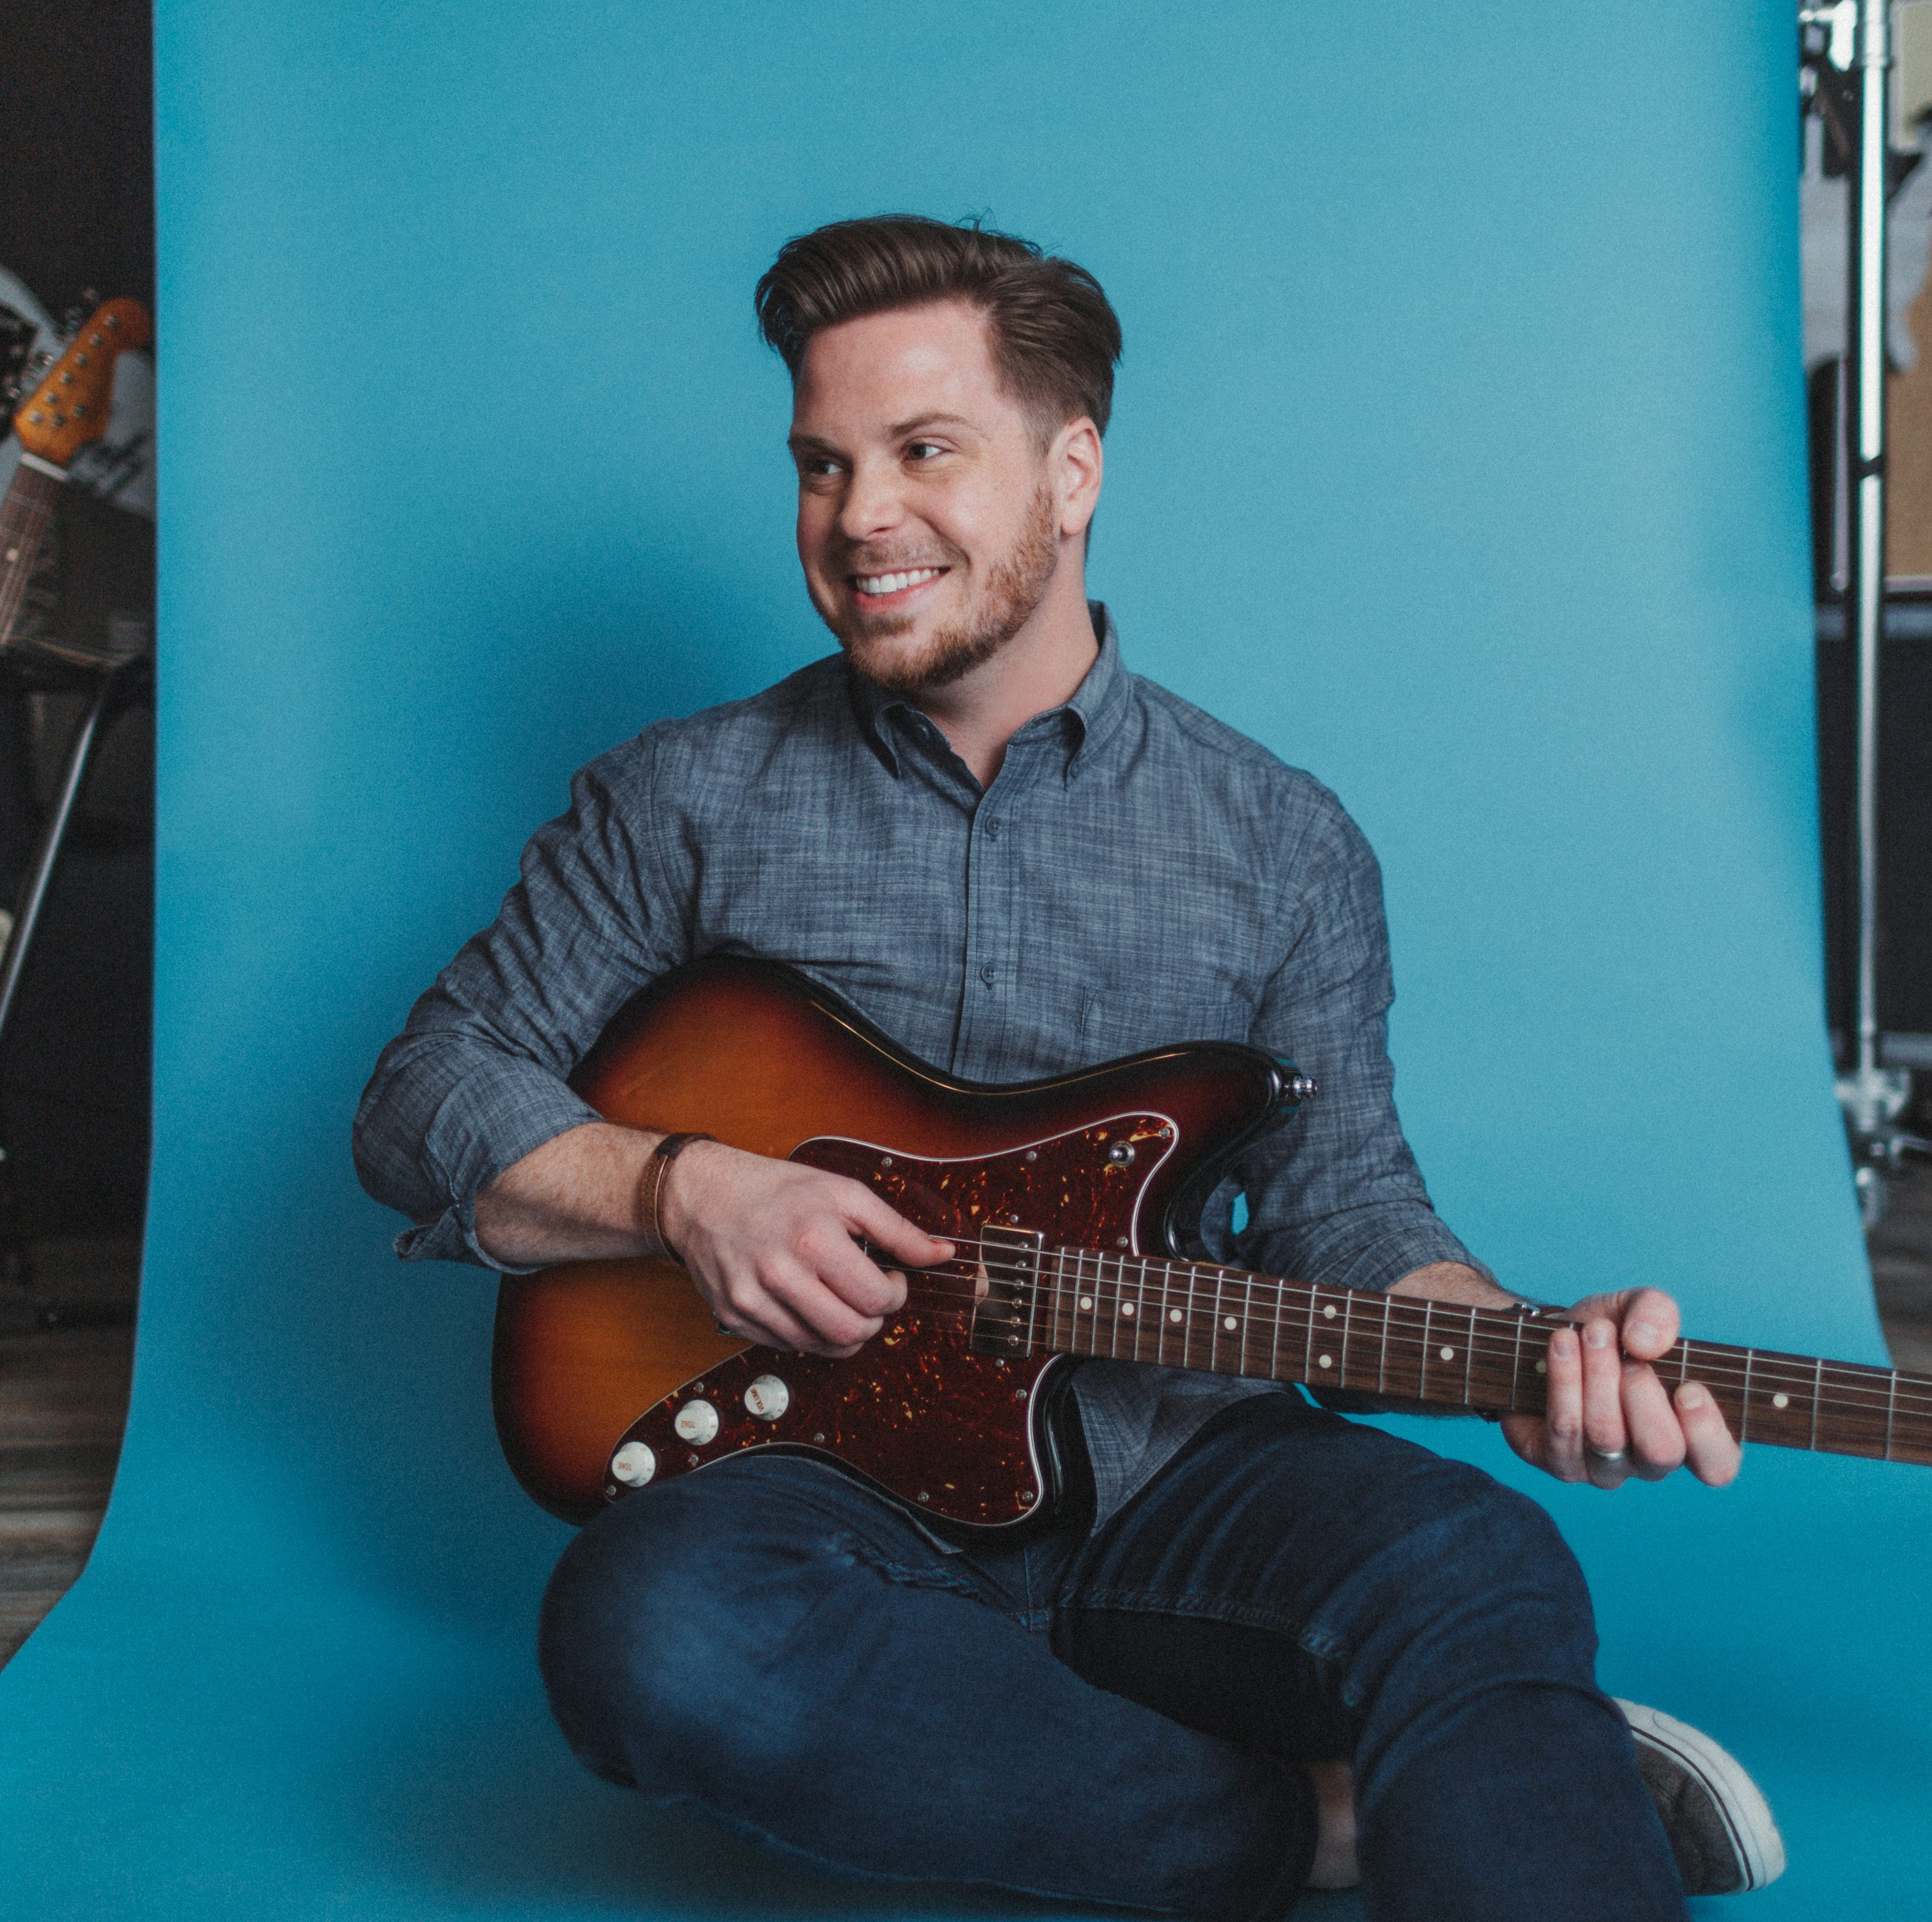 Murfreesboro father and New Vision worship leader hopes to inspire others through music